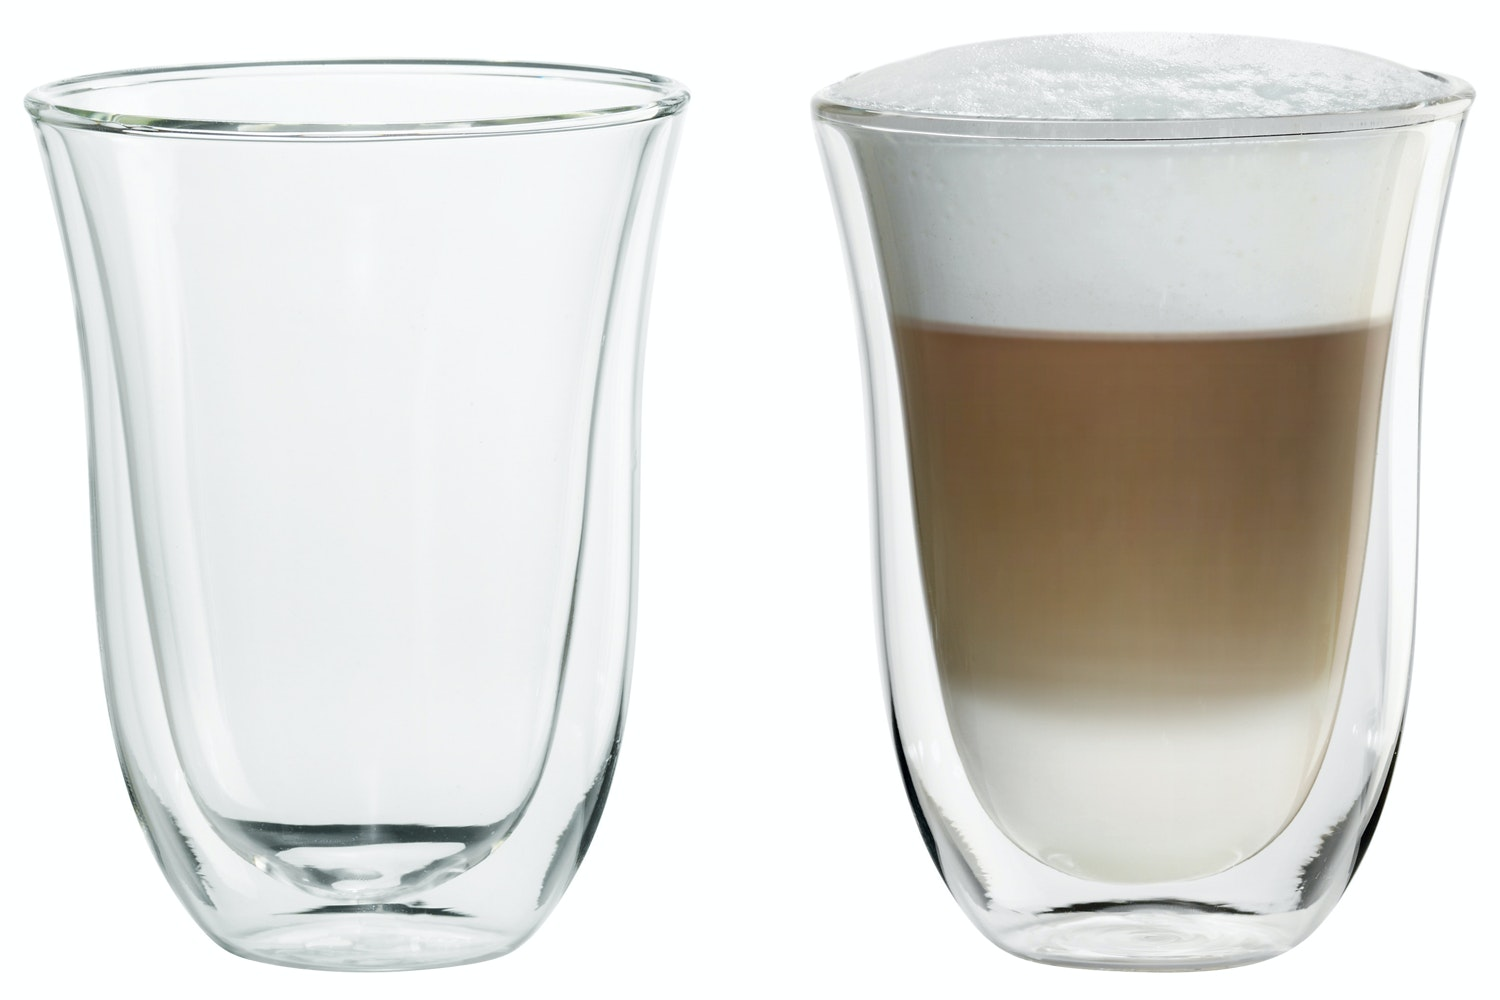 Delonghi Latte Macchiato Thermo Glasses